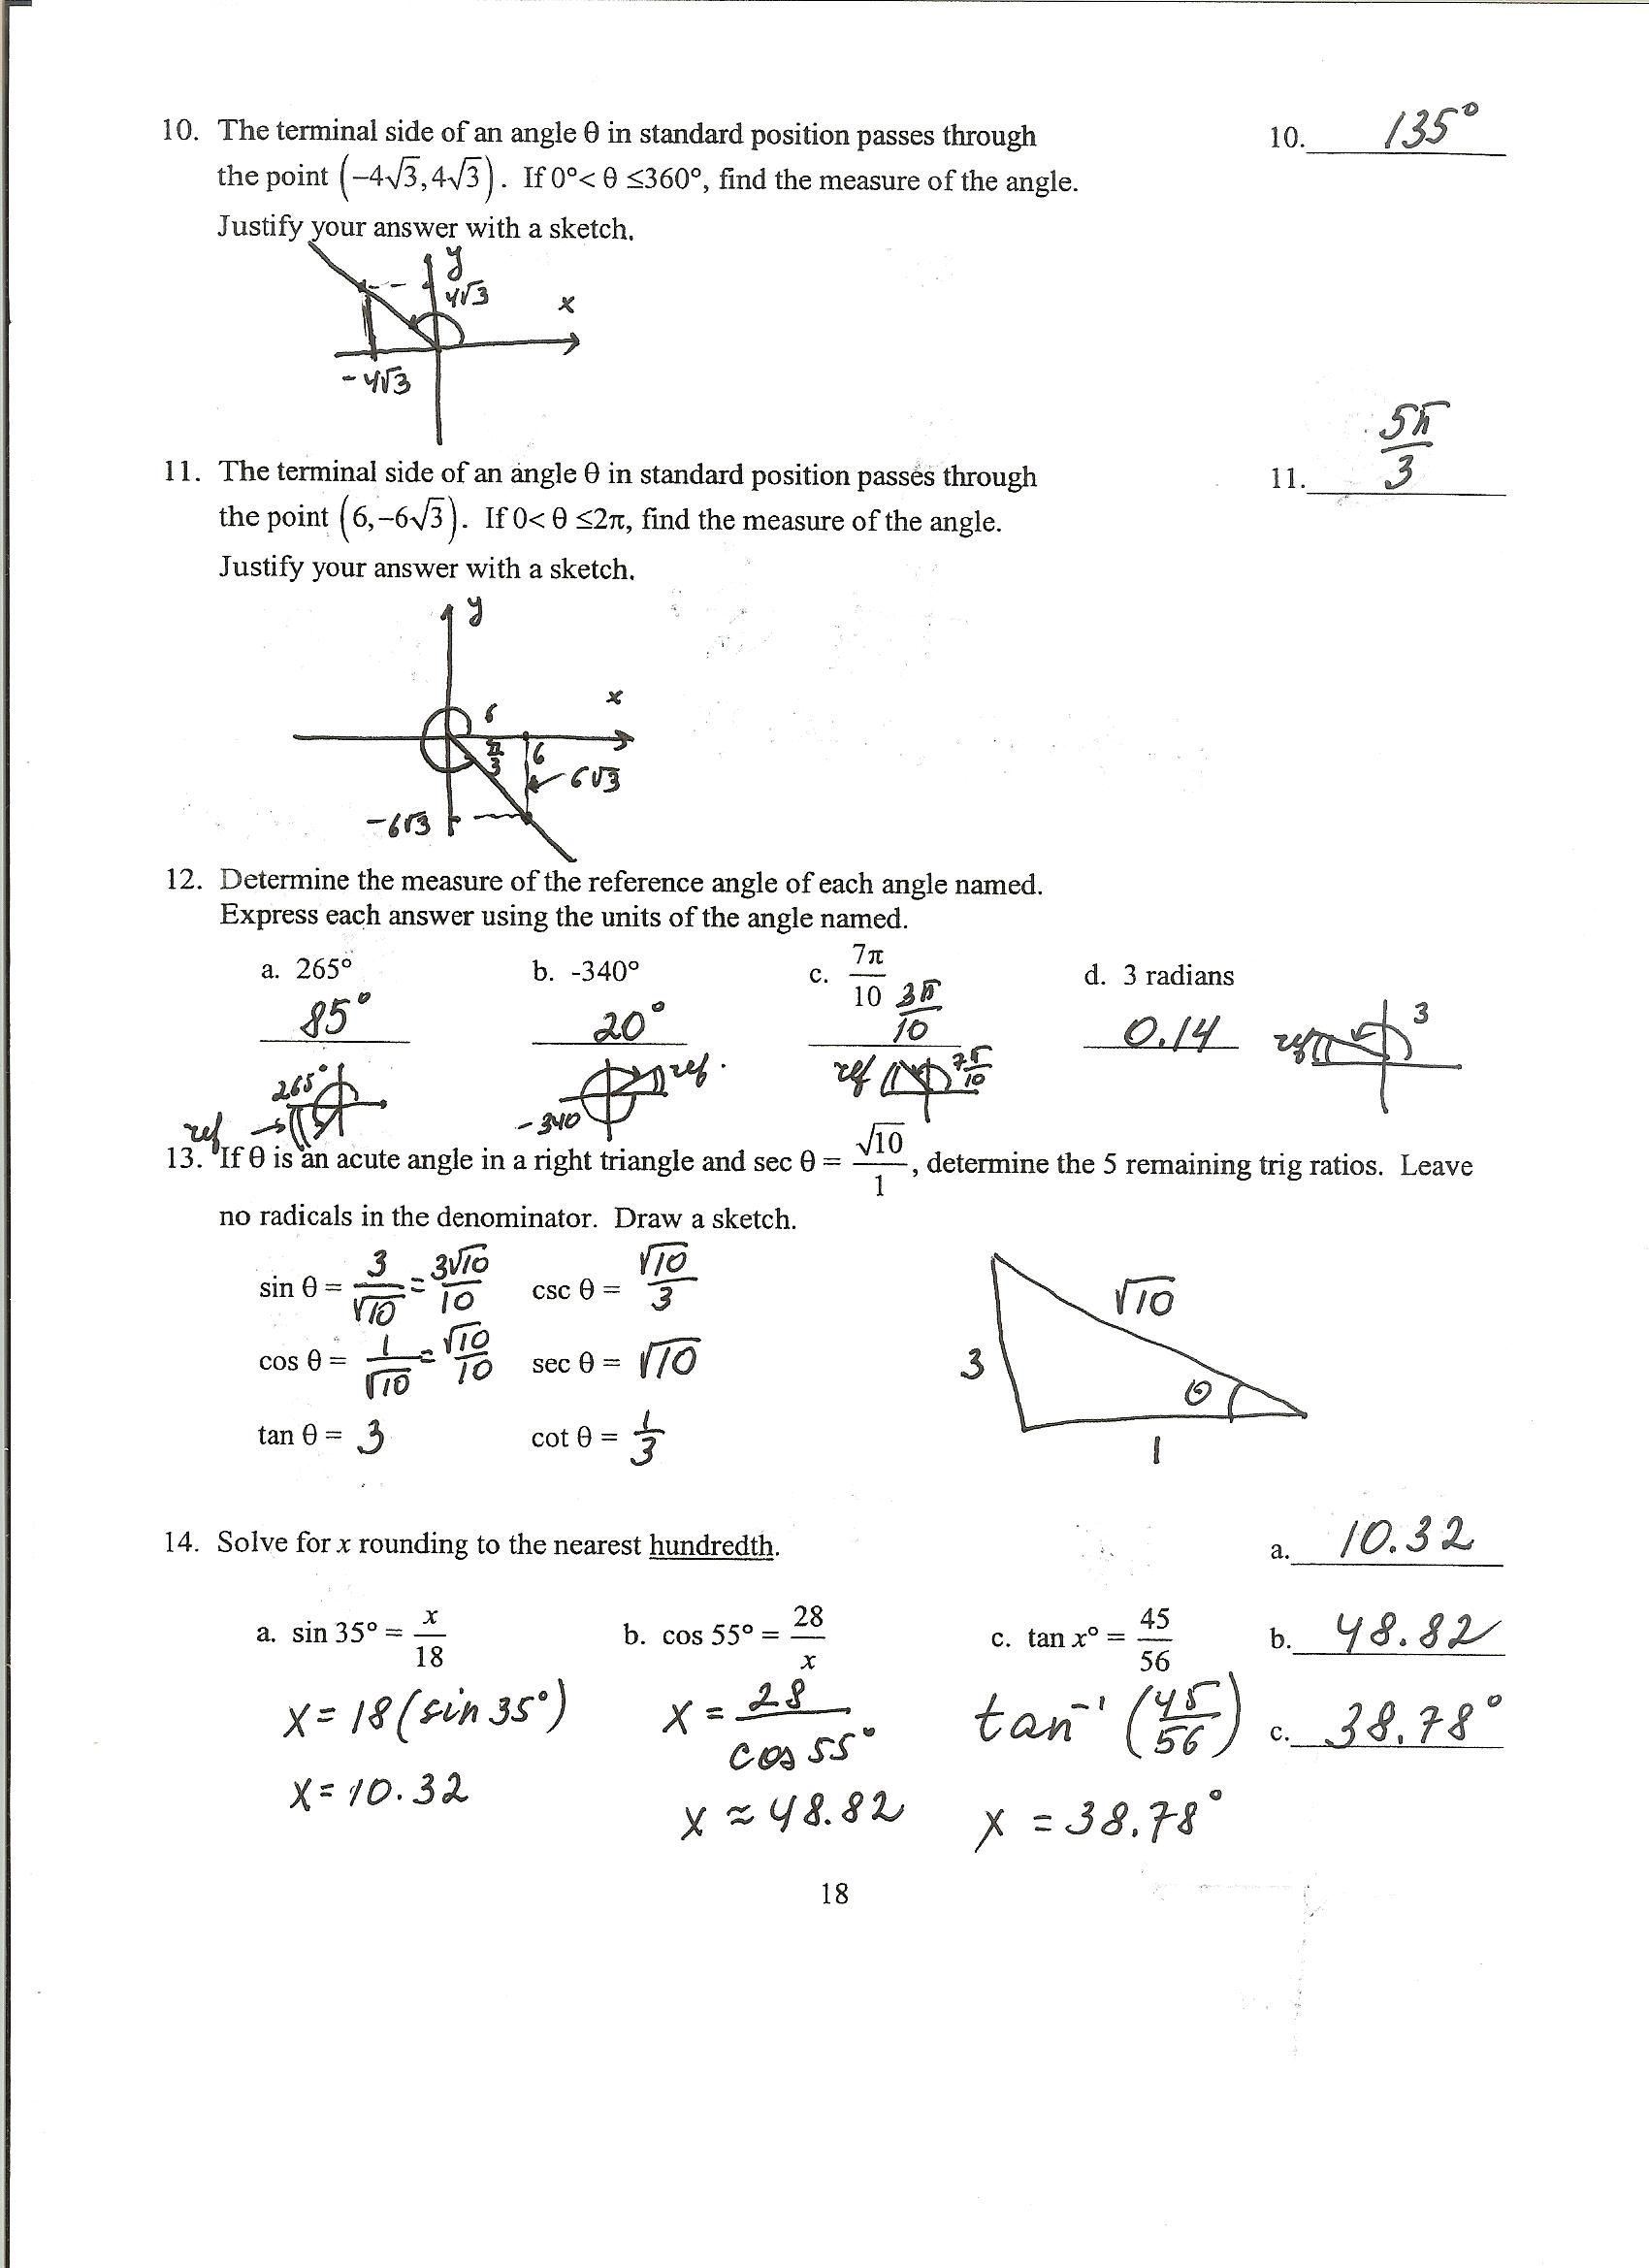 Trigonometric Ratios Worksheet 2 Answers